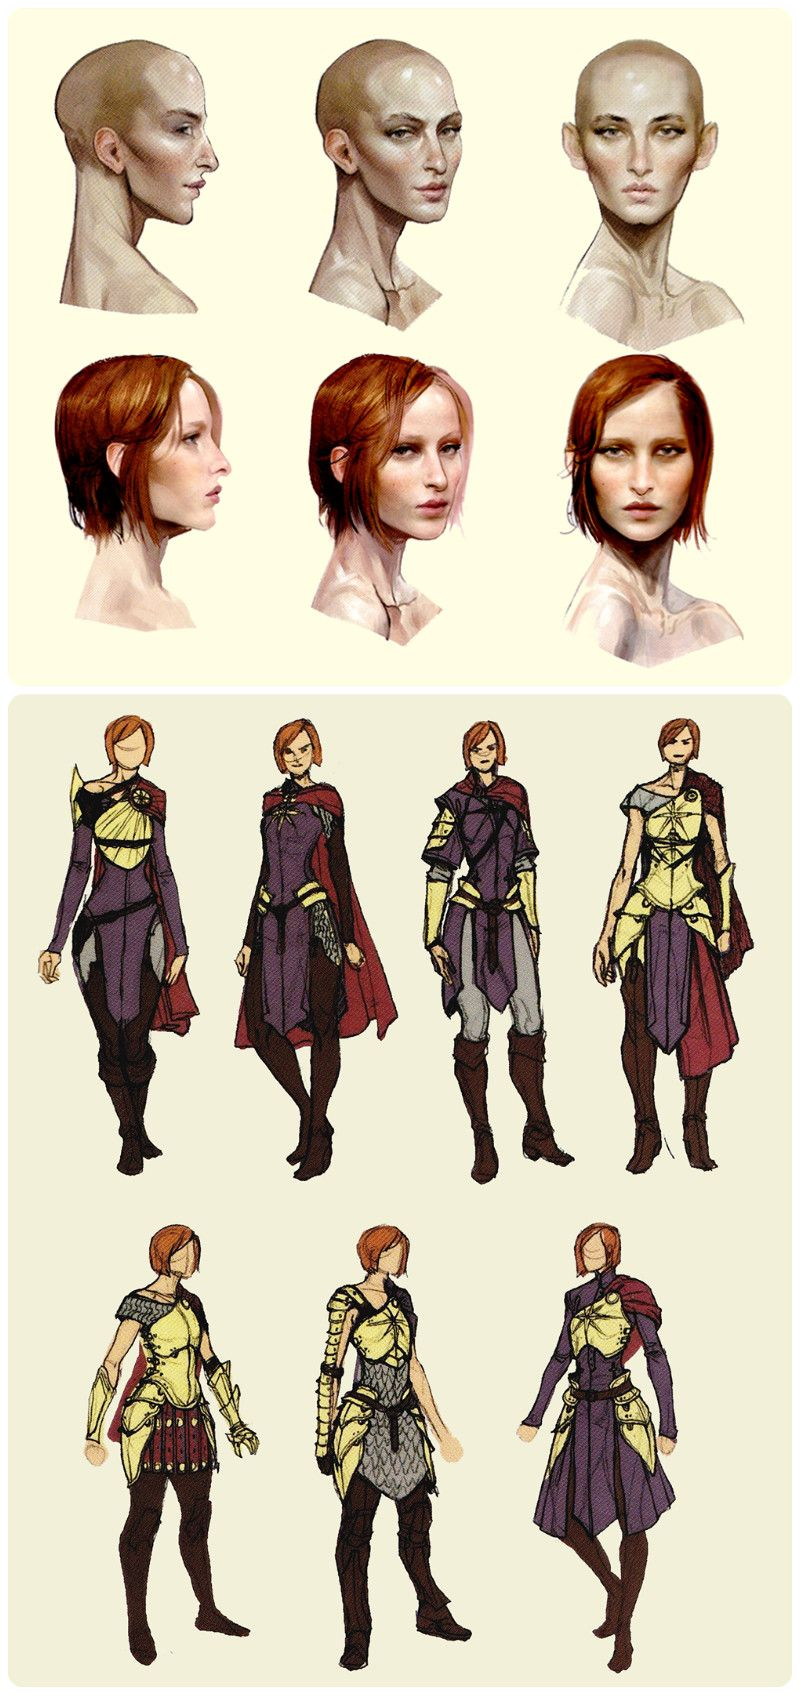 Dragon Age Inquisition Character Design Ideas : Leliana concept art in quot the of dragon age inquisition